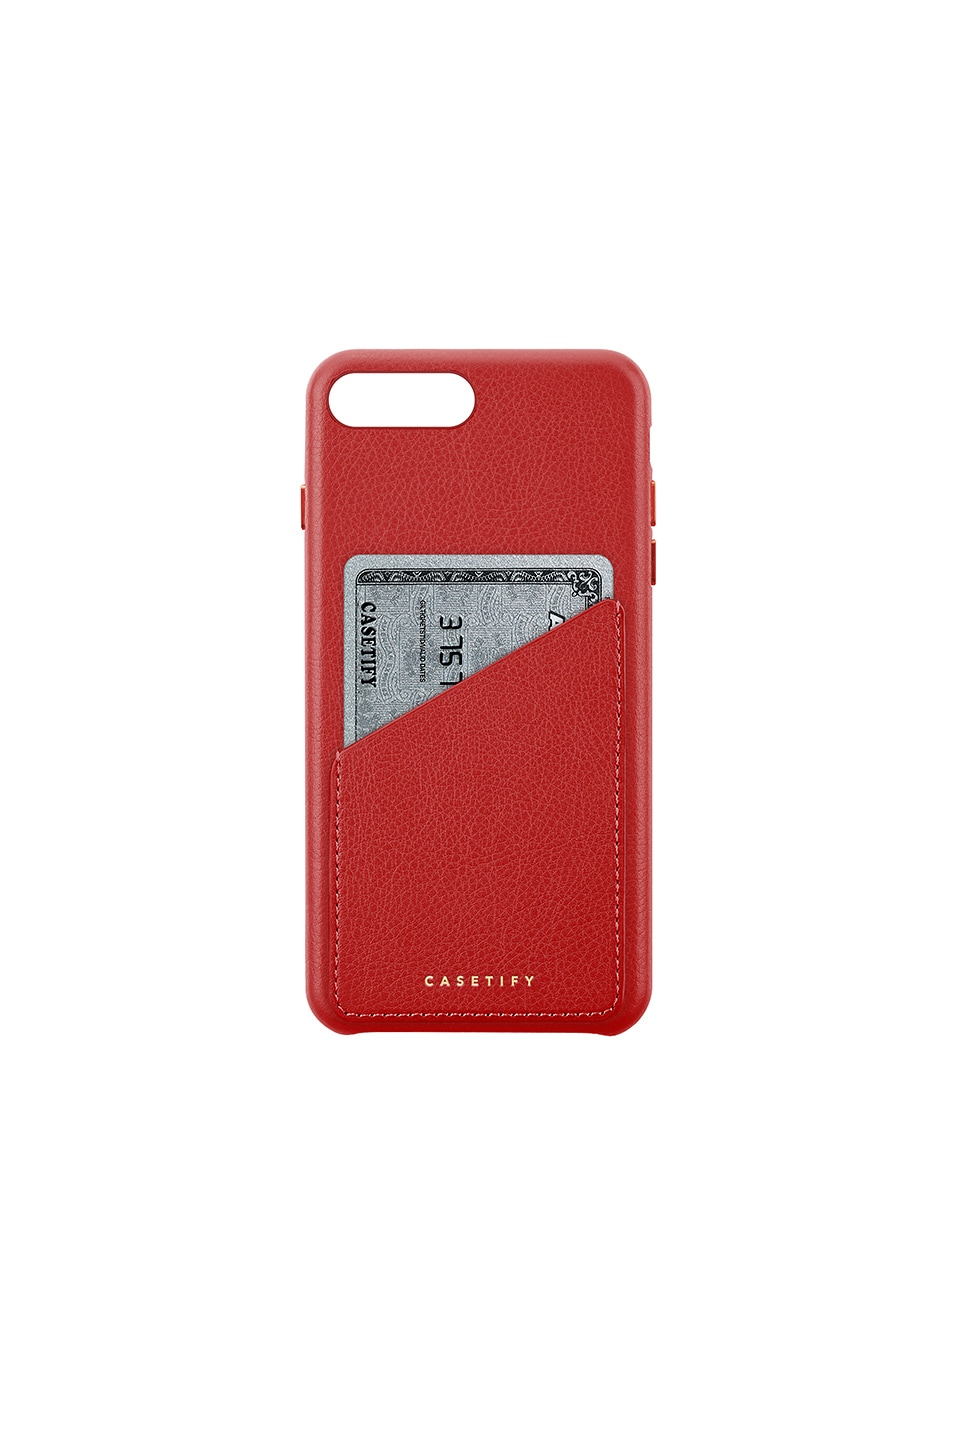 Leather Card Iphone 6/7/8 Plus Case, Red